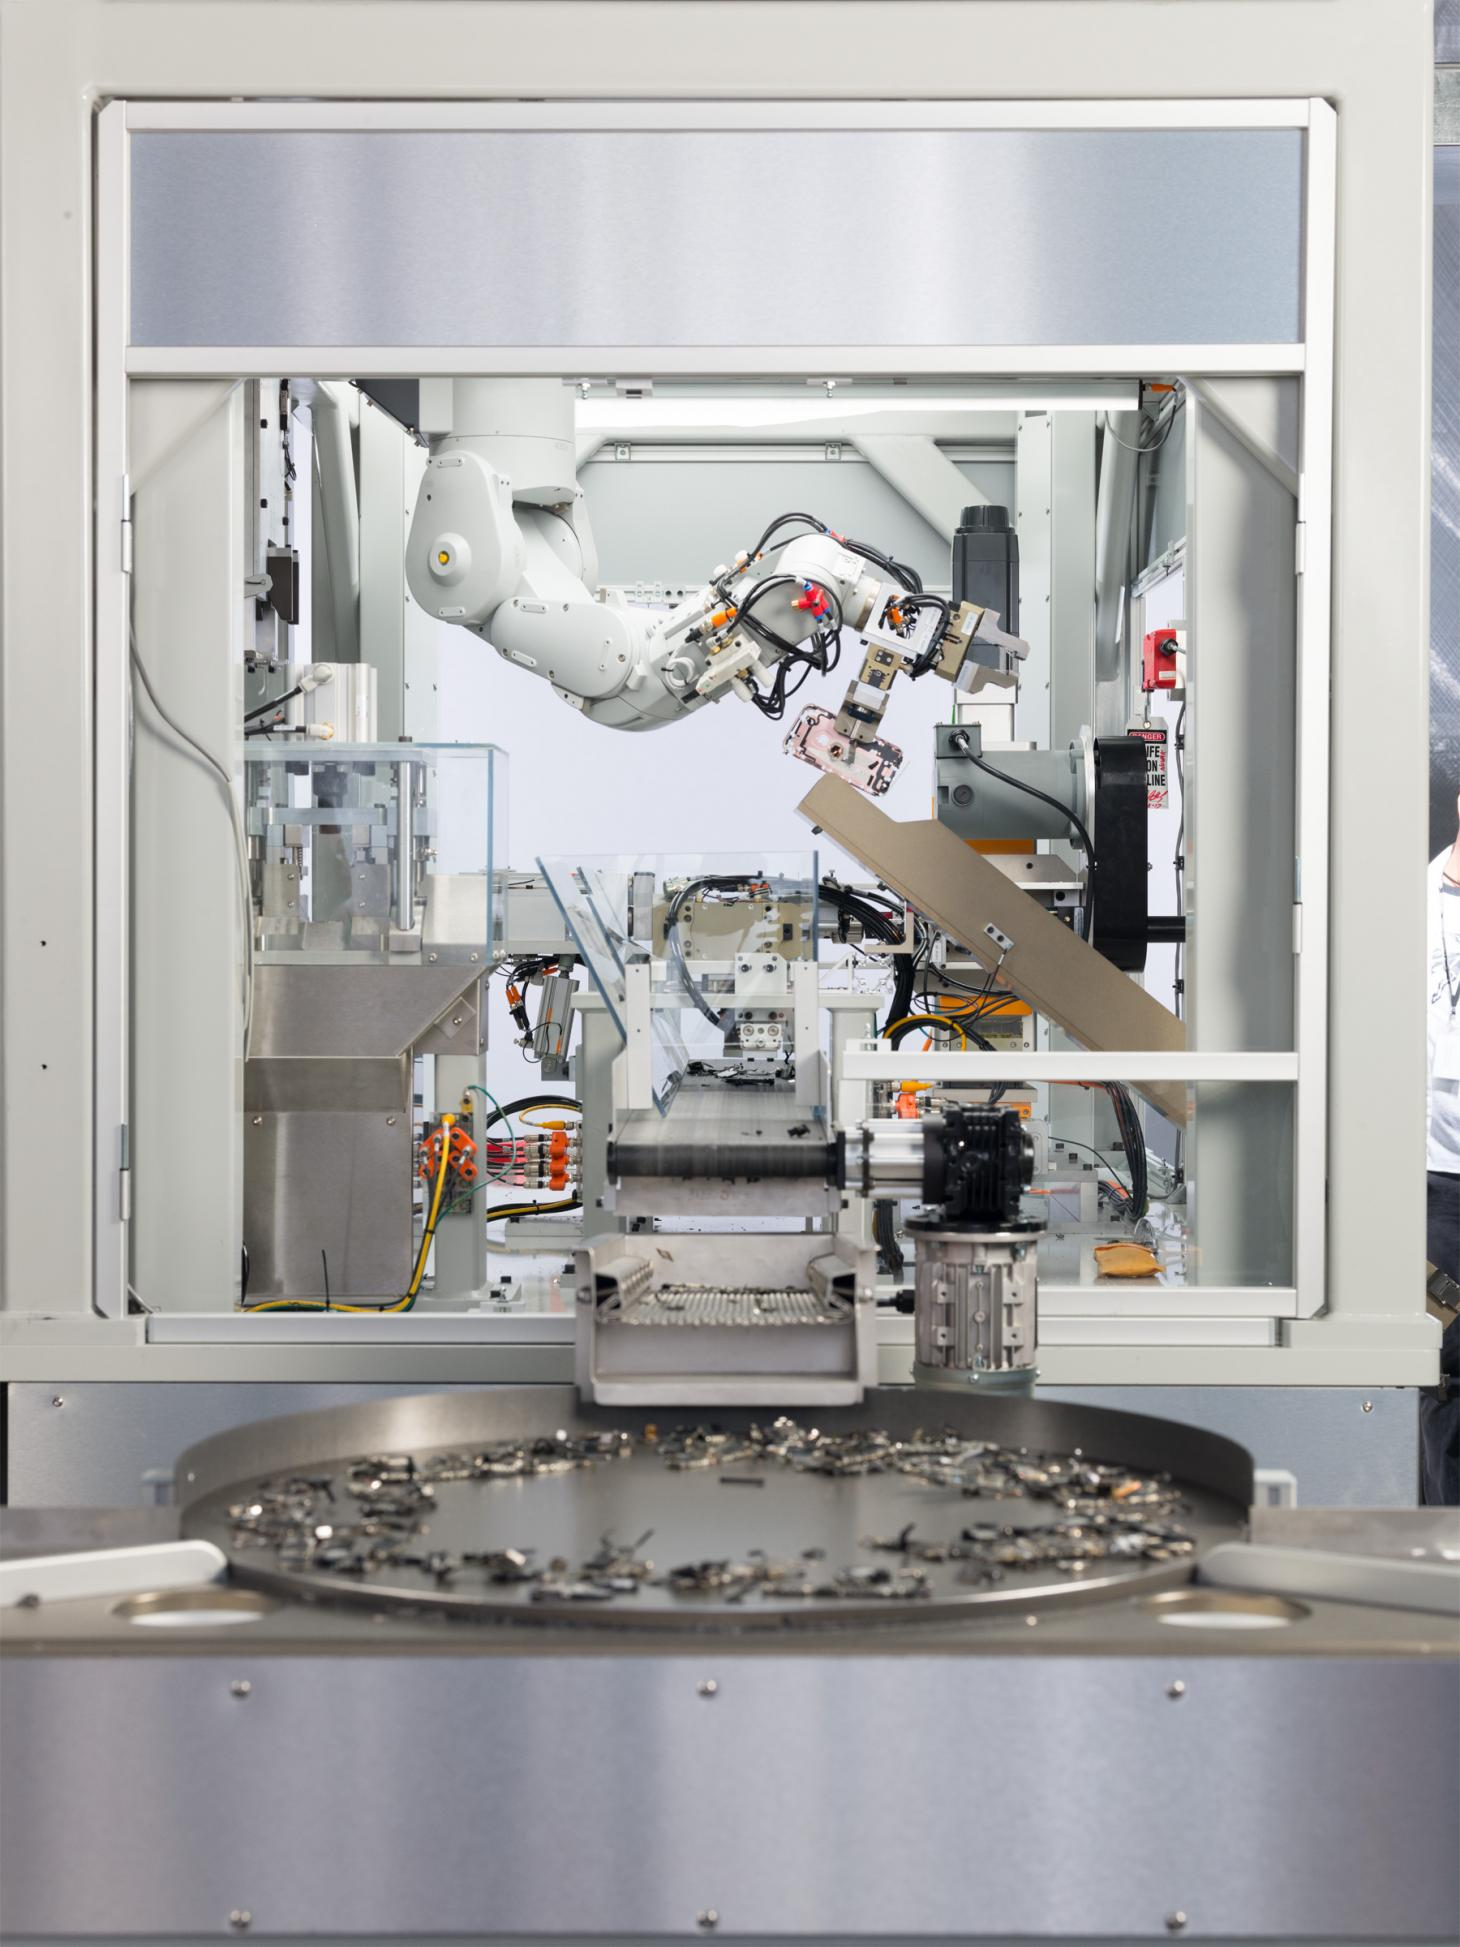 Apple's robot Daisy retrieves end of life consumer materials for recycling